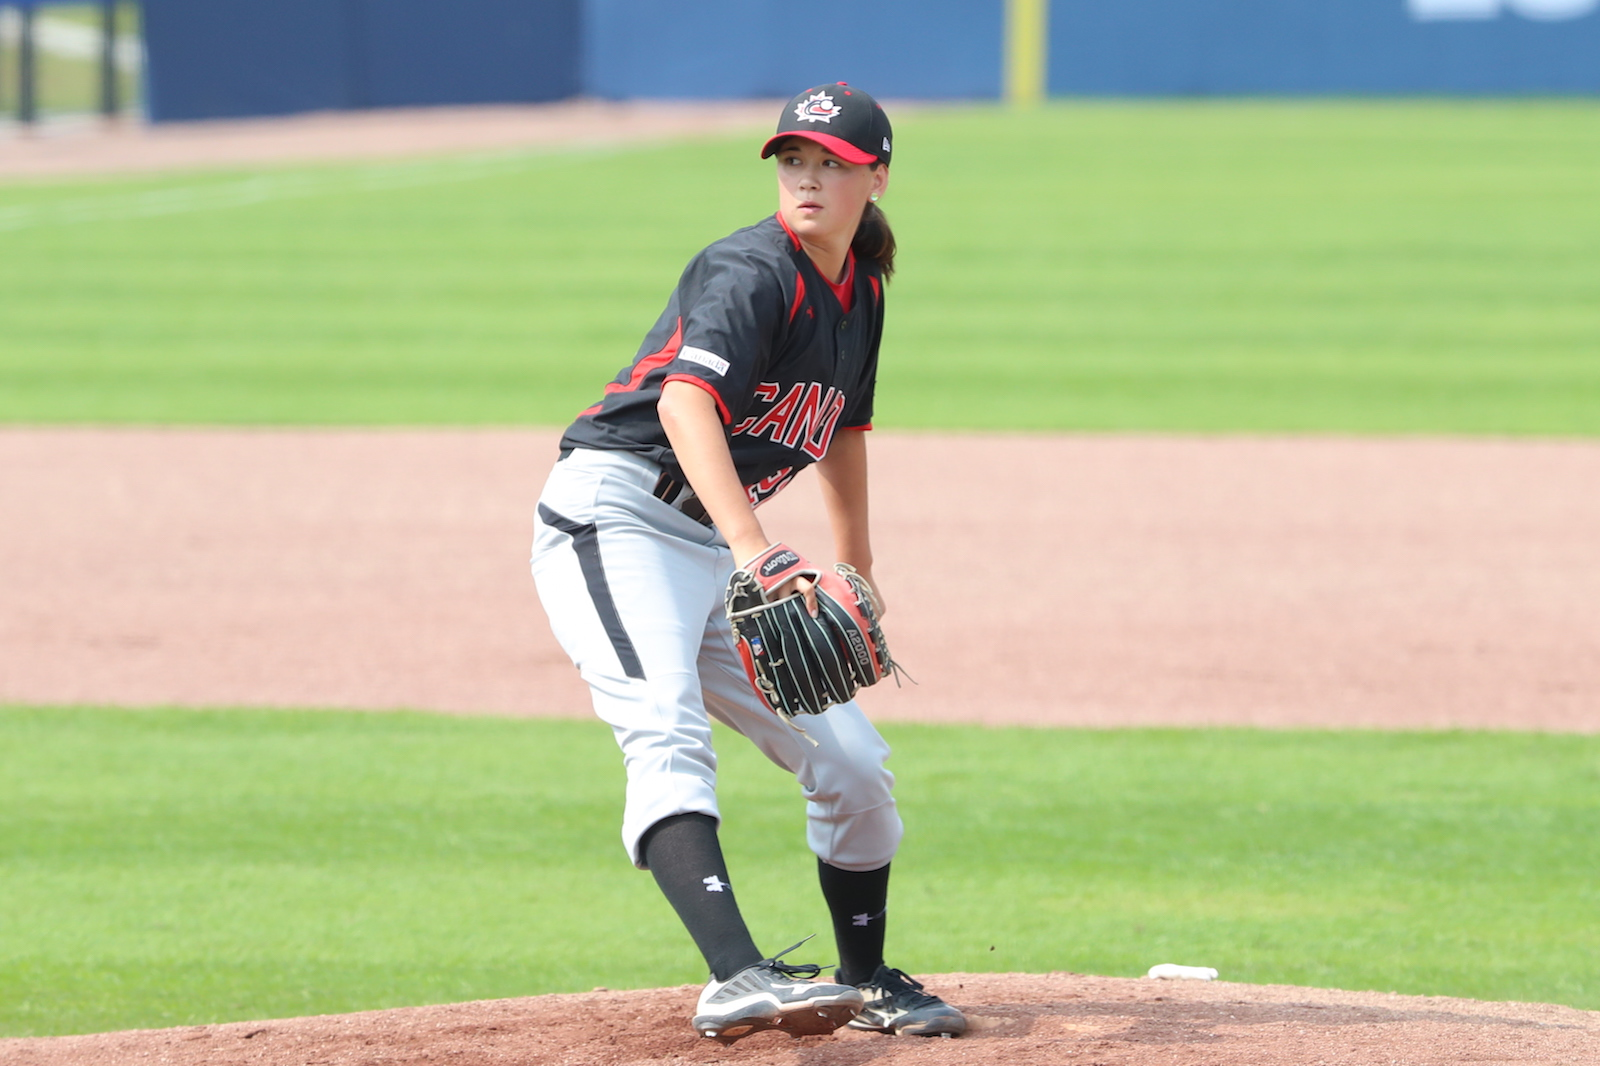 Claire Eccles signs with Victoria HarbourCats